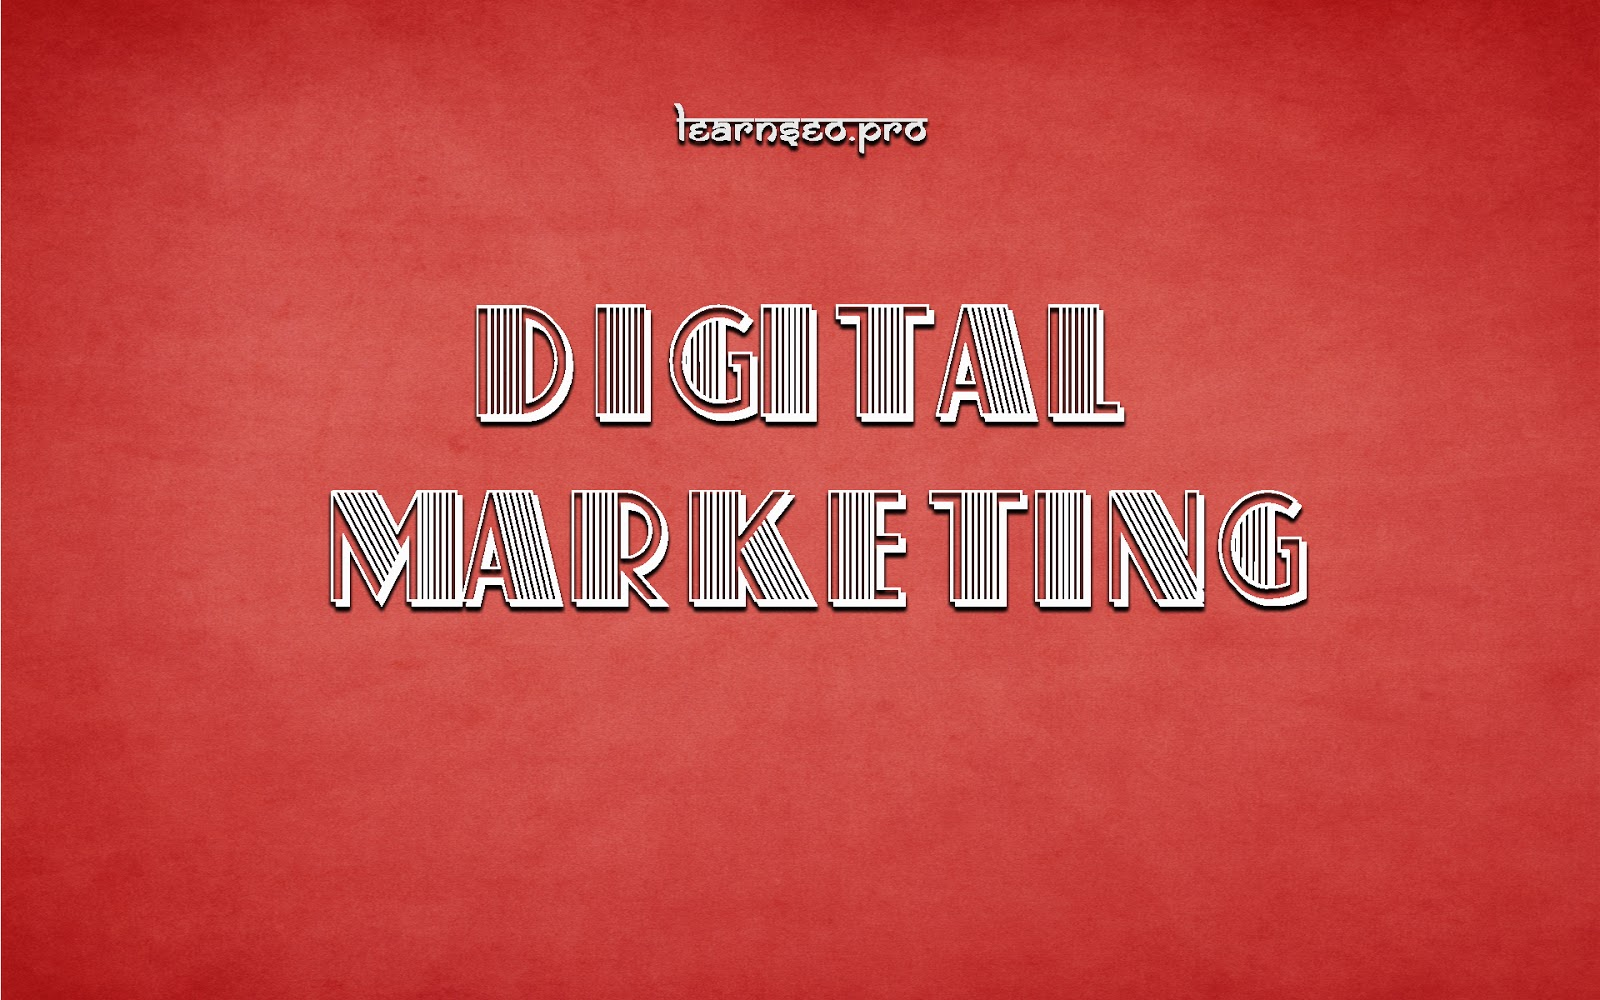 30+ Digital Marketing Wallpaper HD with Quotes | LearnSEO.pro